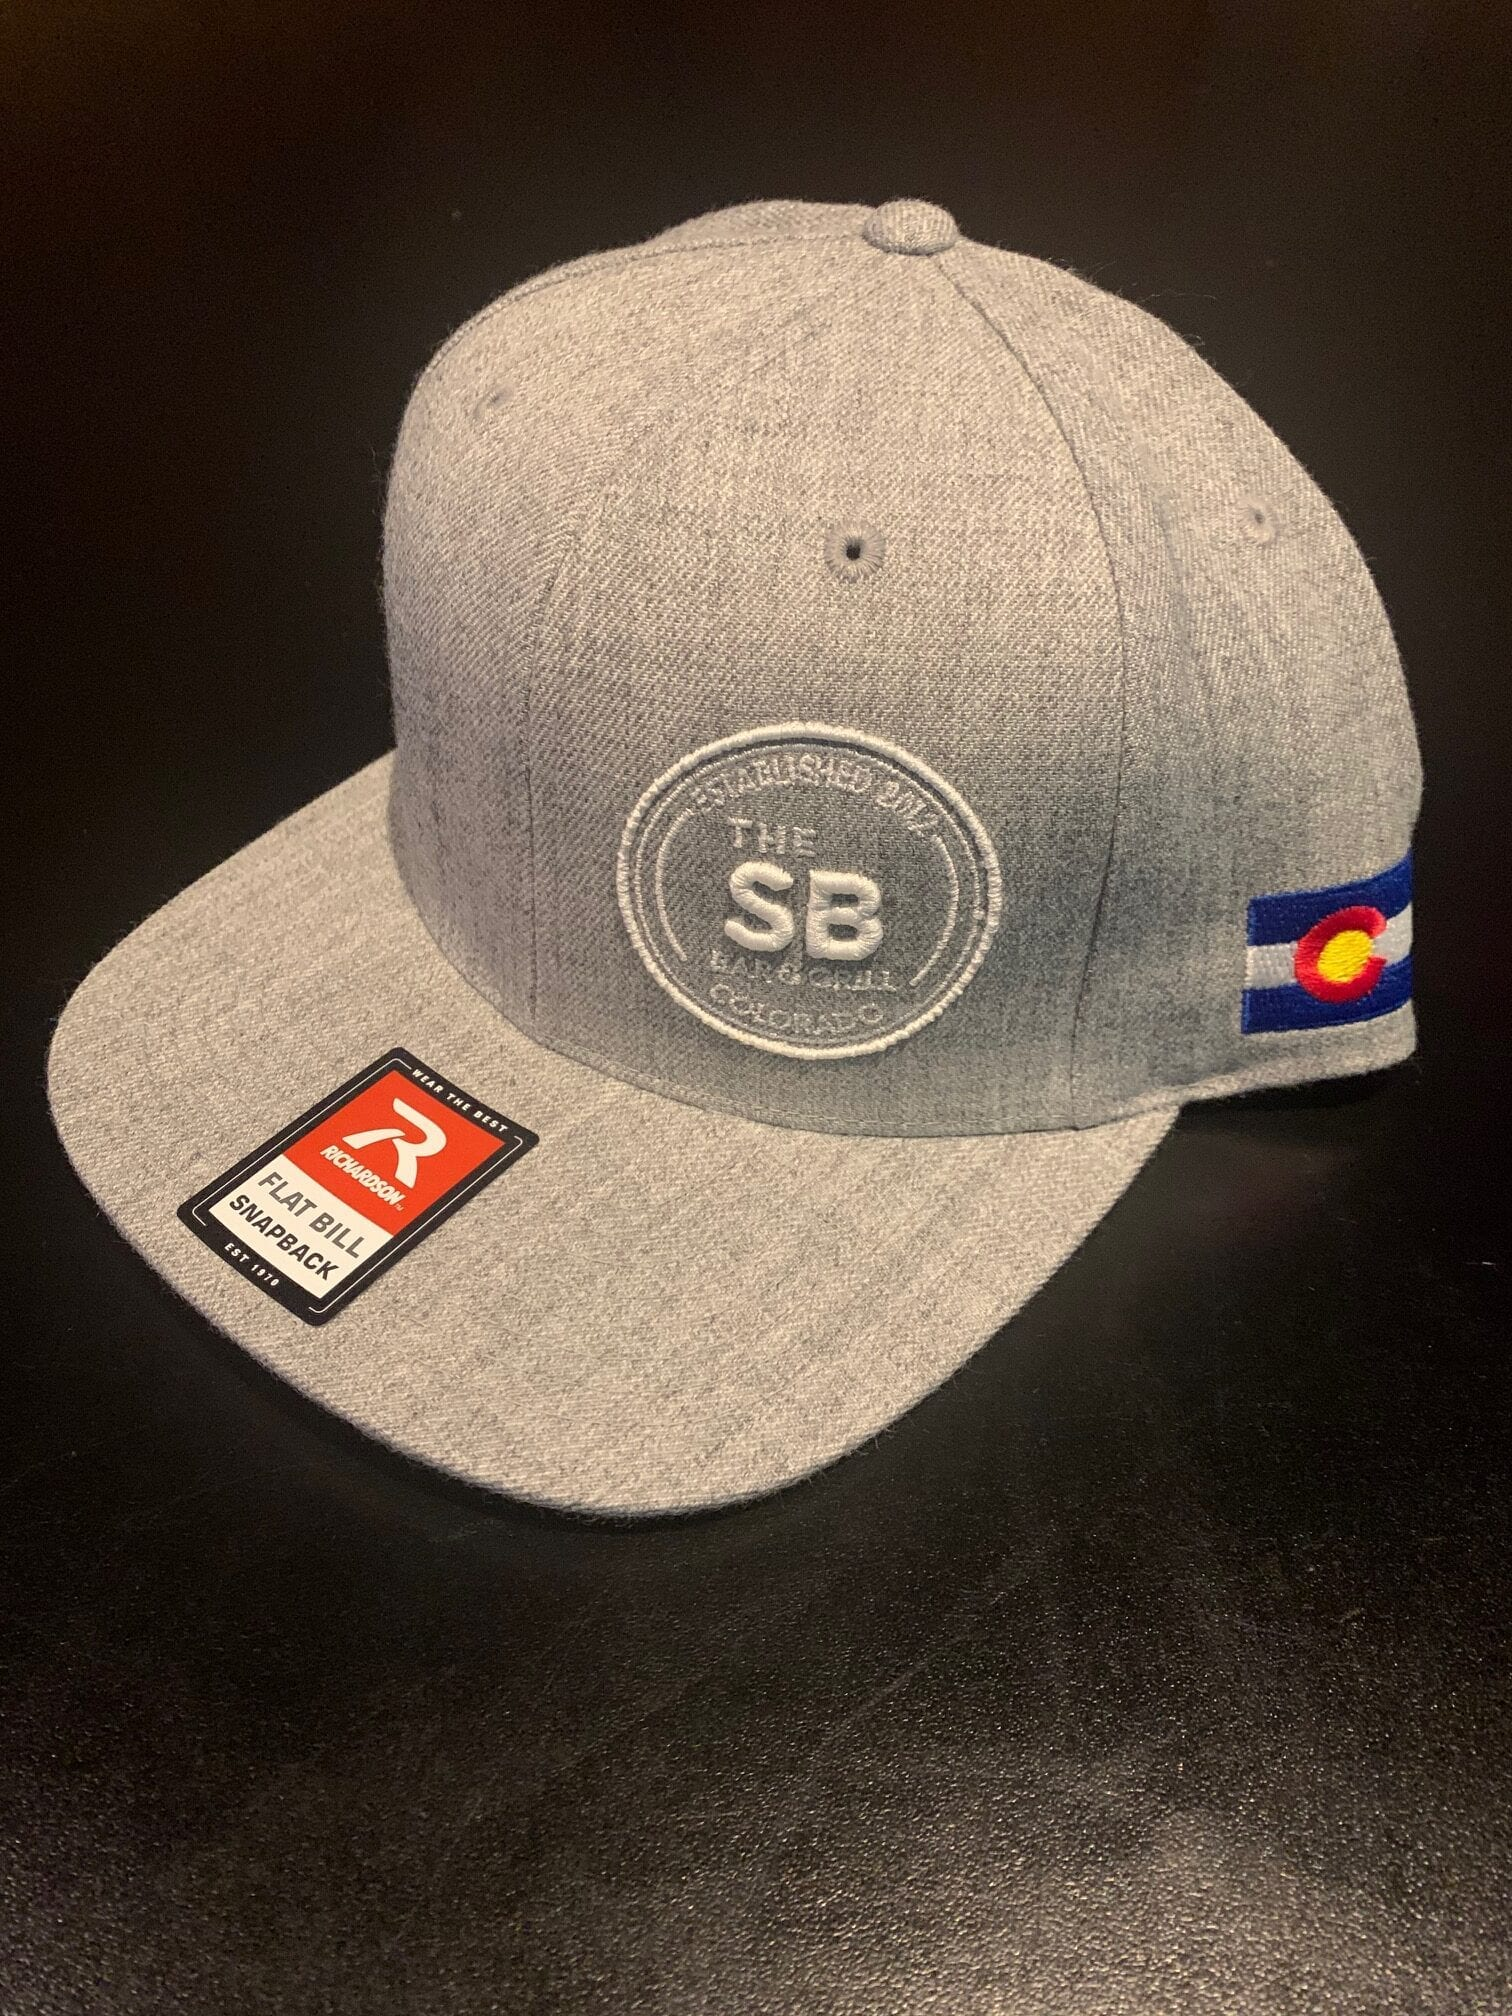 Grey snapback with Colorado logo and white badge